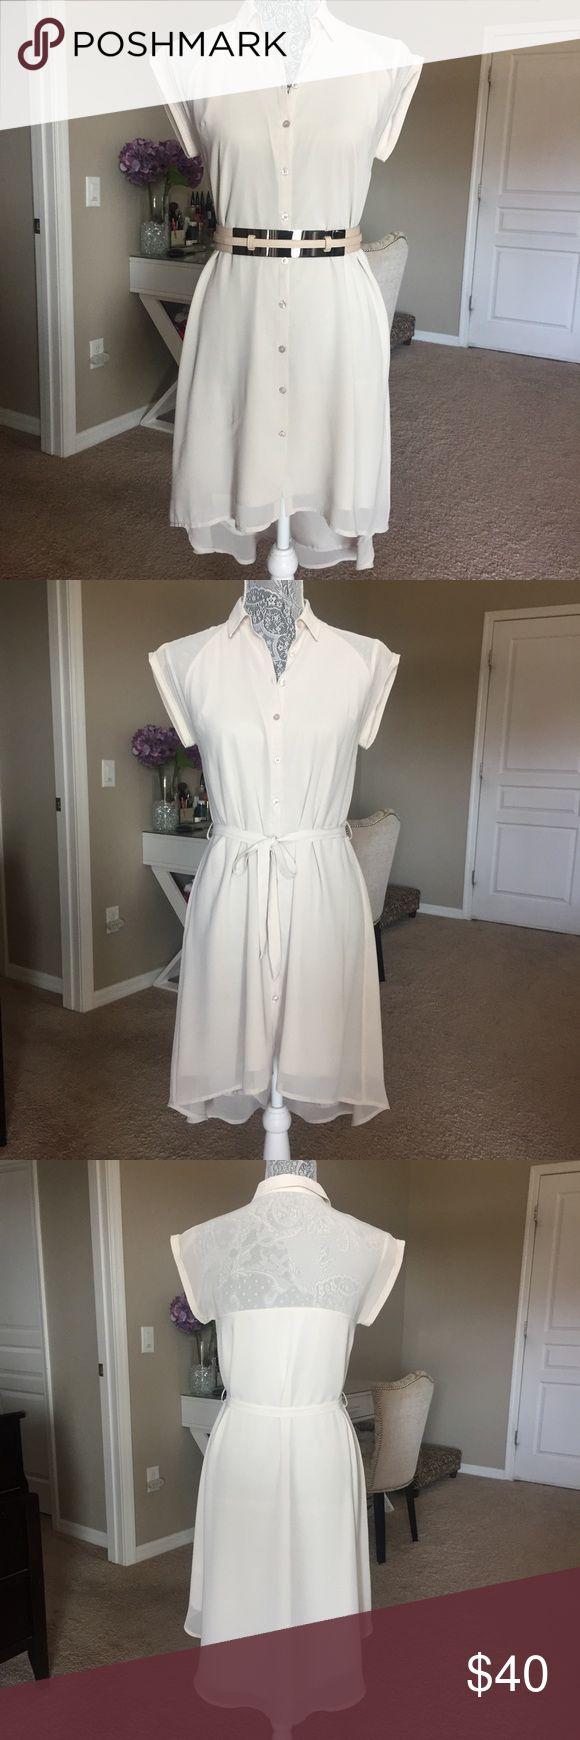 Armani Exchange Hi-Low Button Down Dress Armani Exchange high low button down dress. Sash tie. In overall good condition. Slight stain/discoloration in last pic--not noticeable unless you look very close. NO TRADES. A/X Armani Exchange Dresses High Low